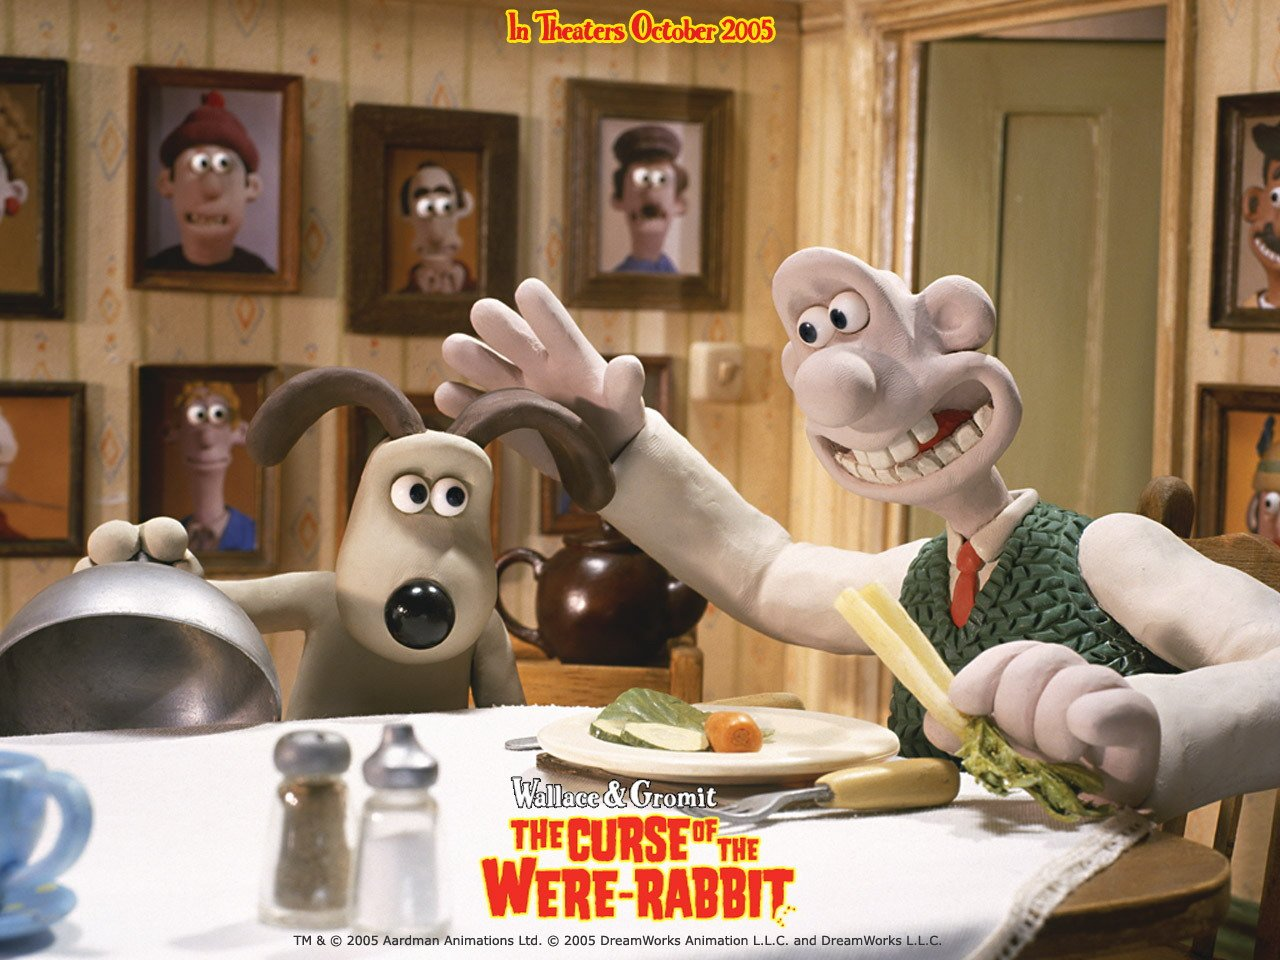 Free Download Wallace And Gromit The Curse Of The Were Rabbit 2005 Wallpaper 1280x960 For Your Desktop Mobile Tablet Explore 68 Wallace And Gromit Wallpaper Wallace And Gromit Wallpaper